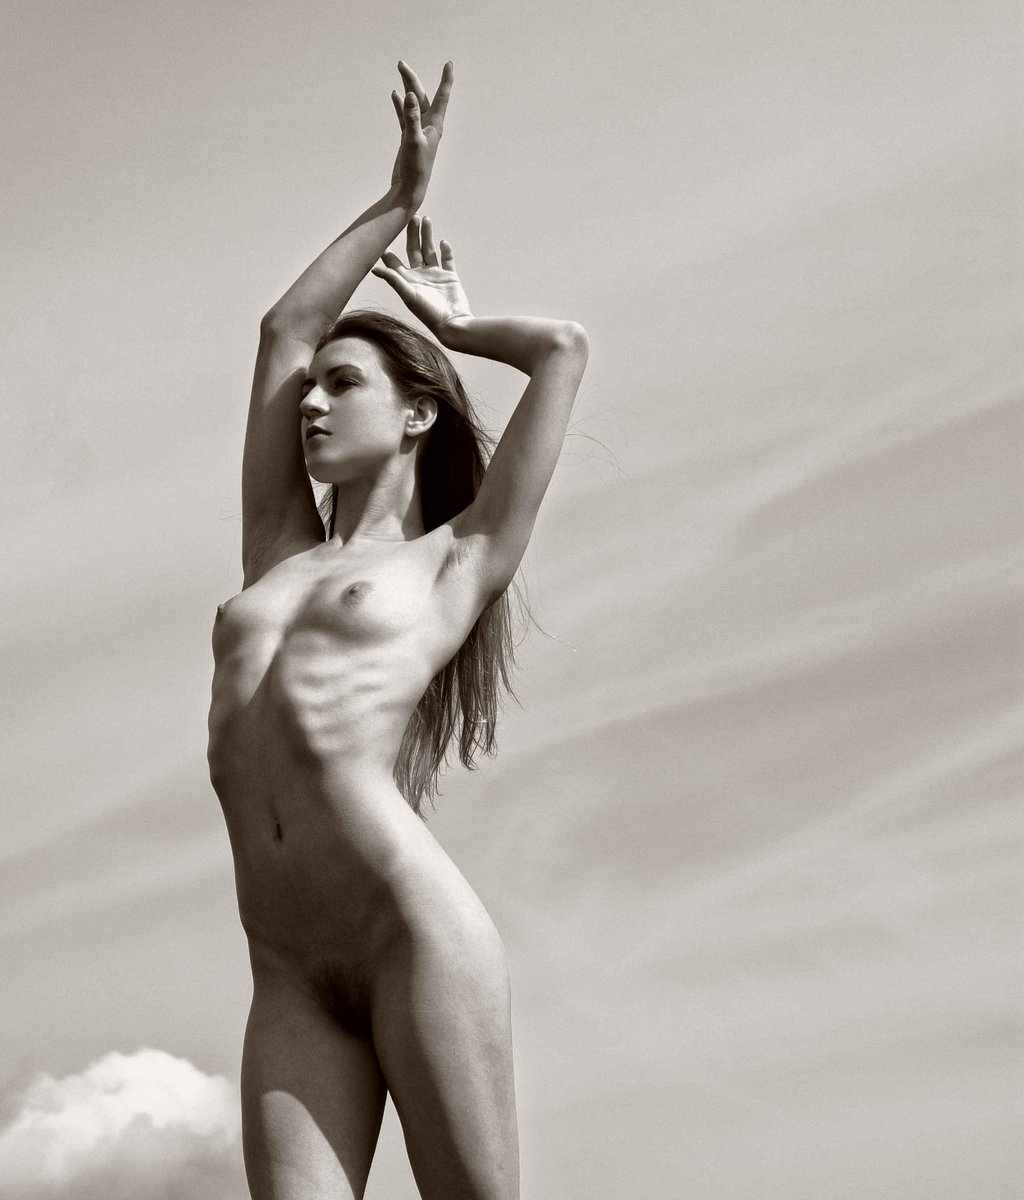 statuesque - Photography by Howard Gould aM7US1GG9S